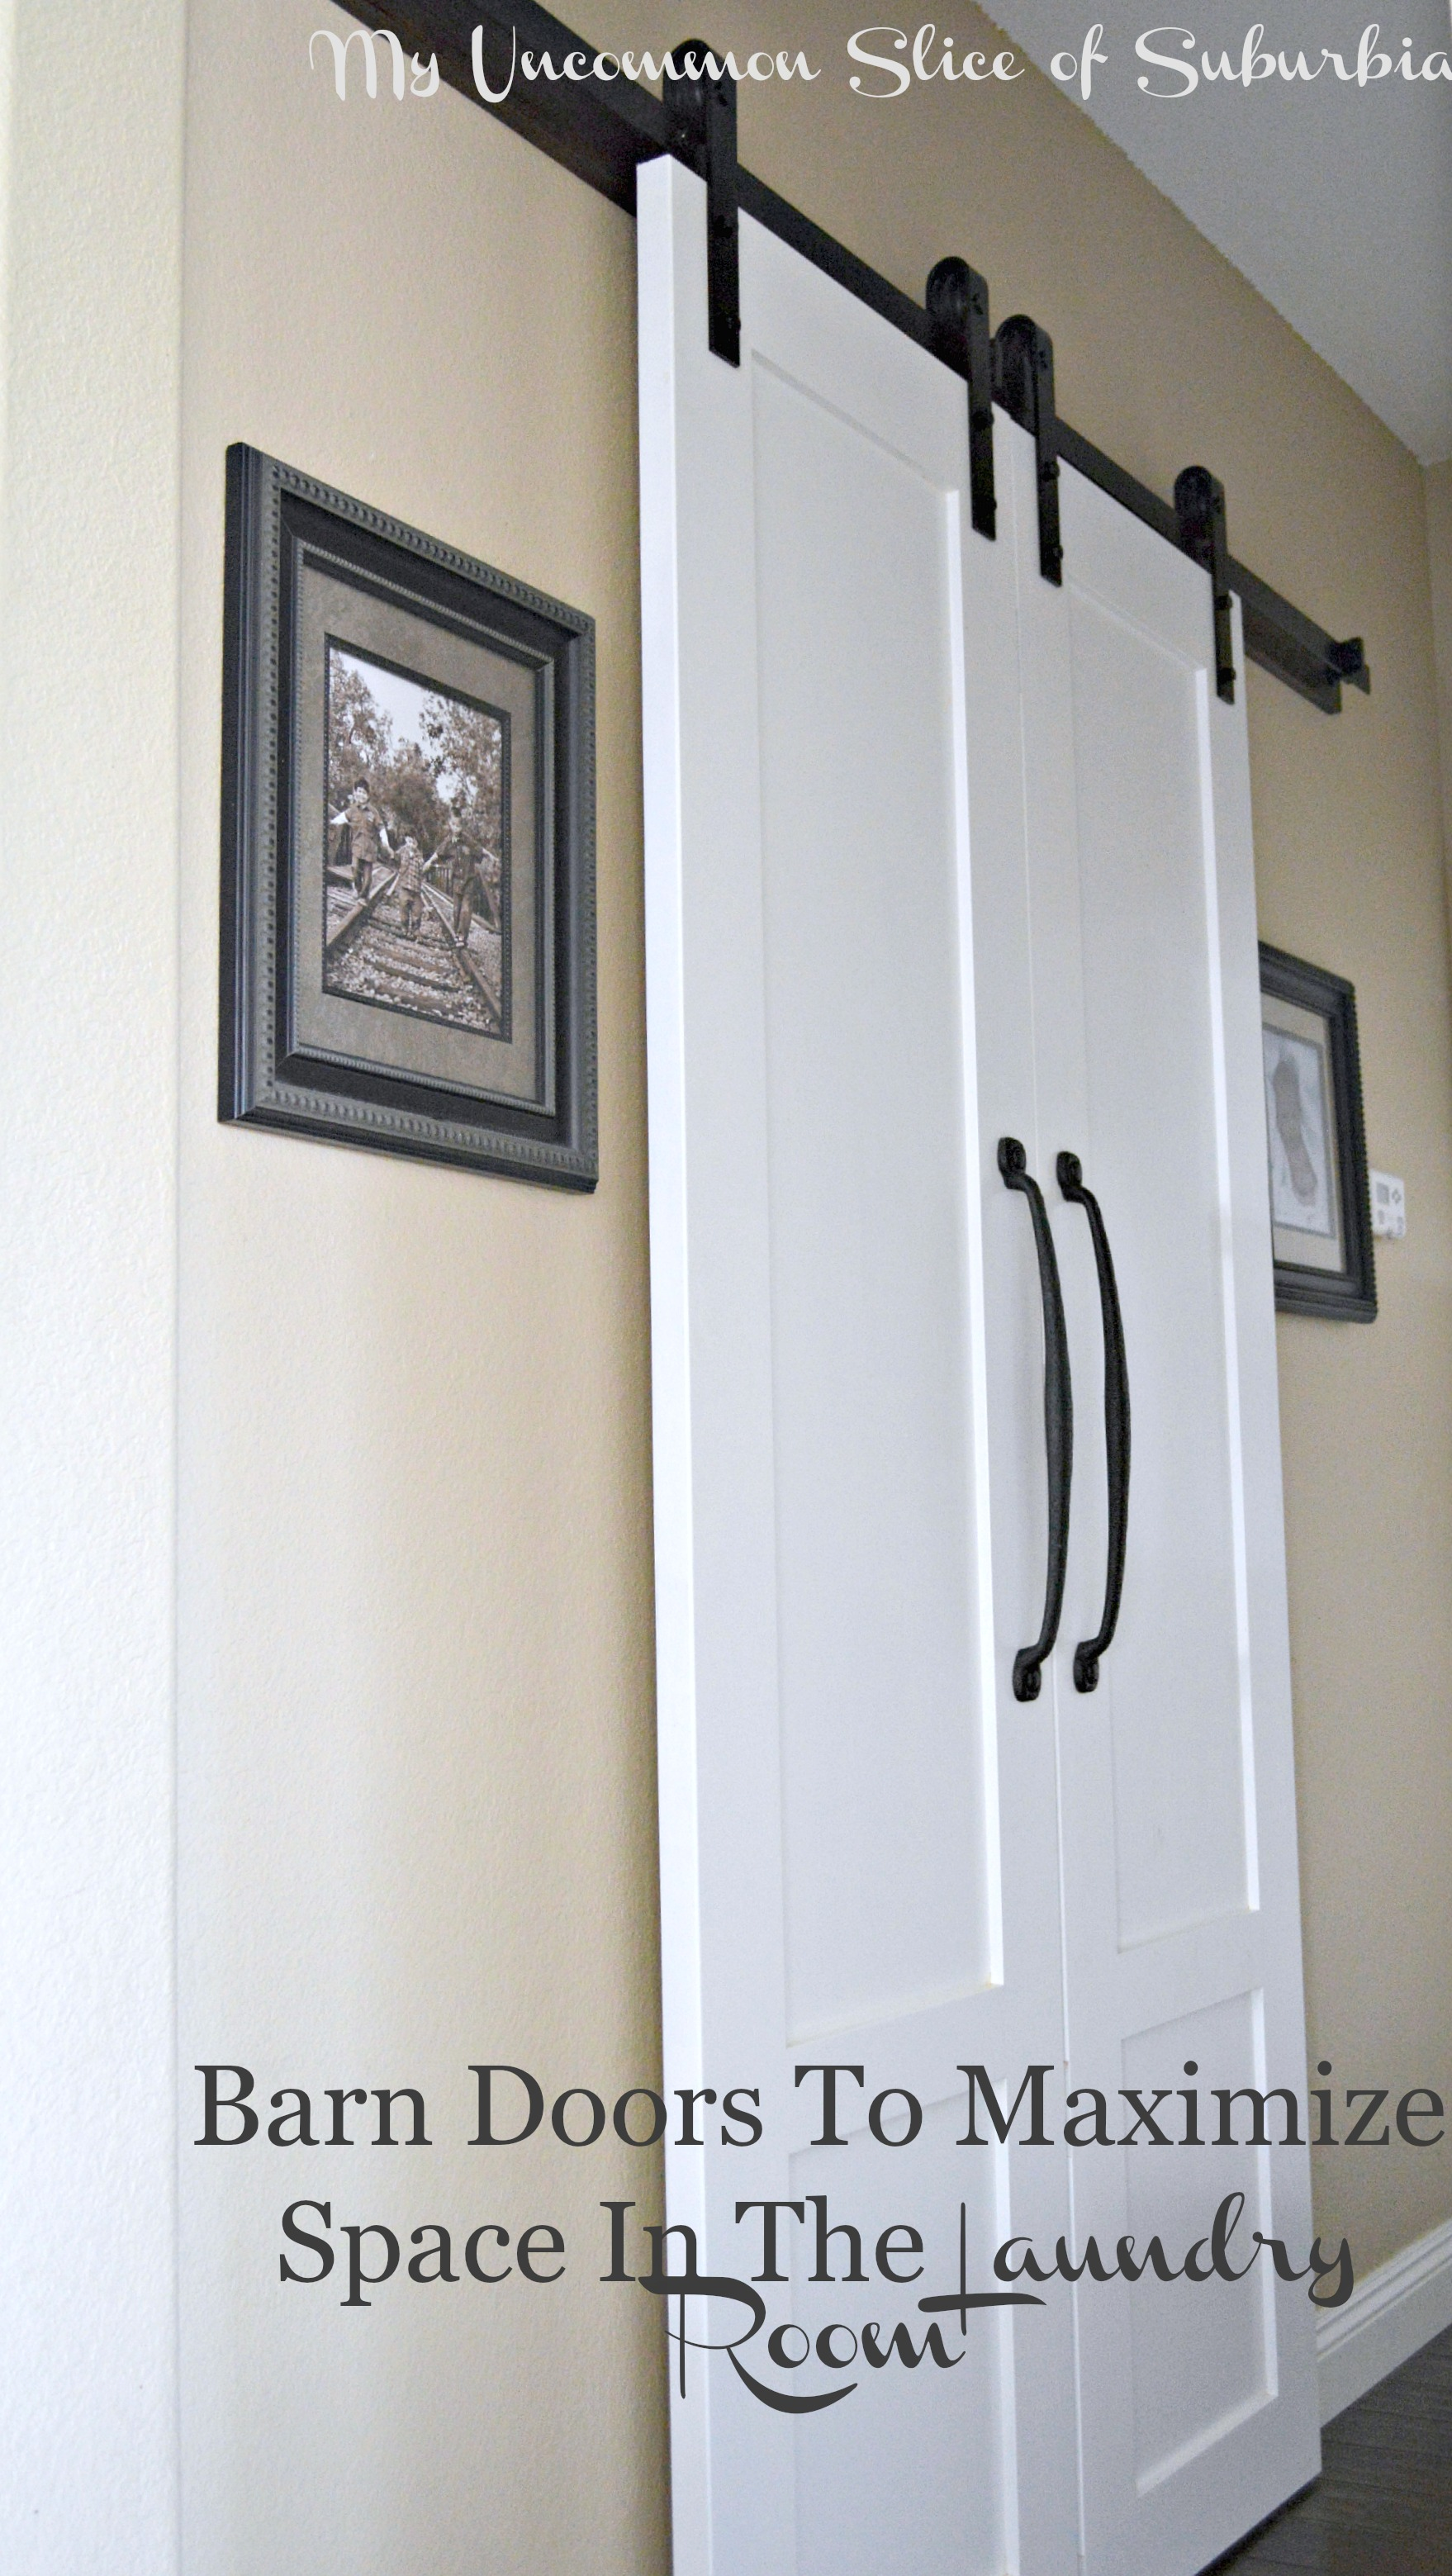 & Barn Doors For The Laundry Room